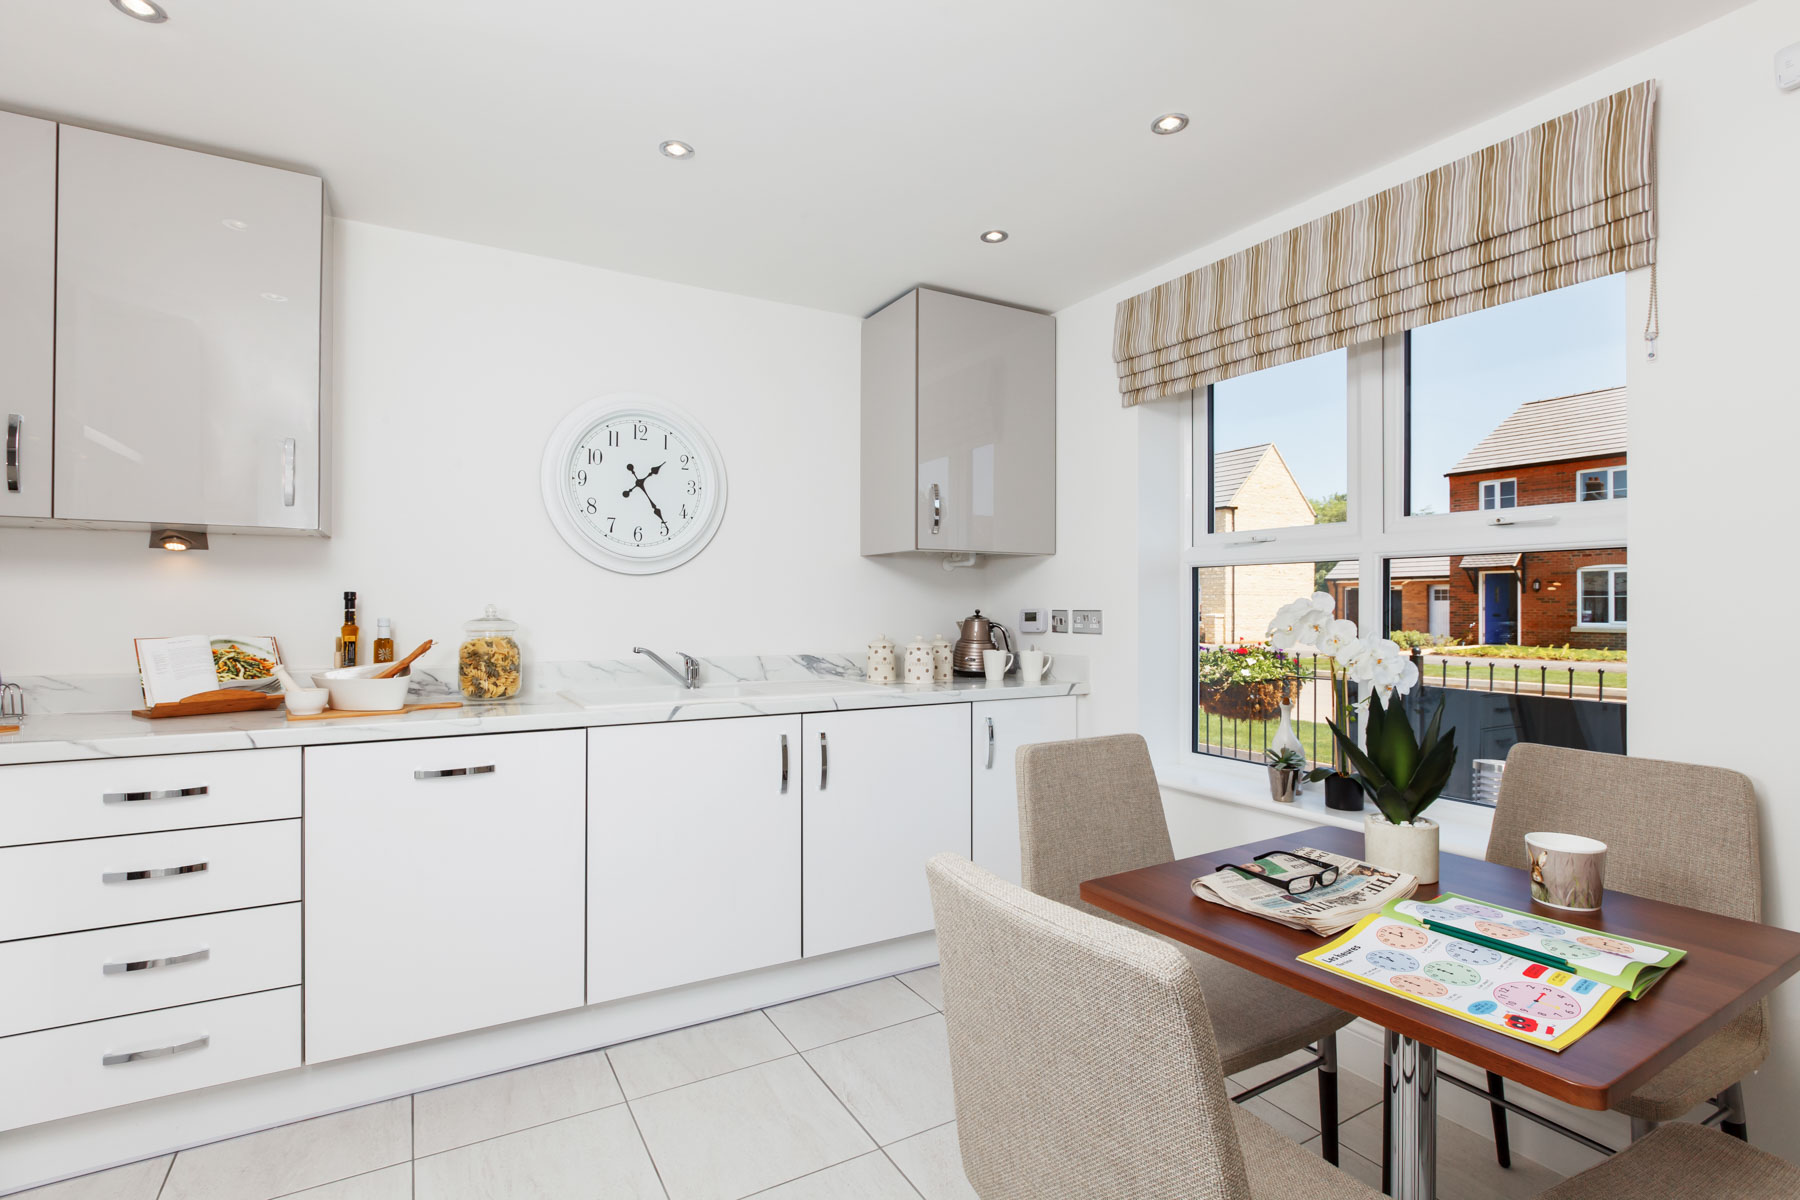 TW Exeter - Rackenford Meadow - Farleigh example kitchen 2